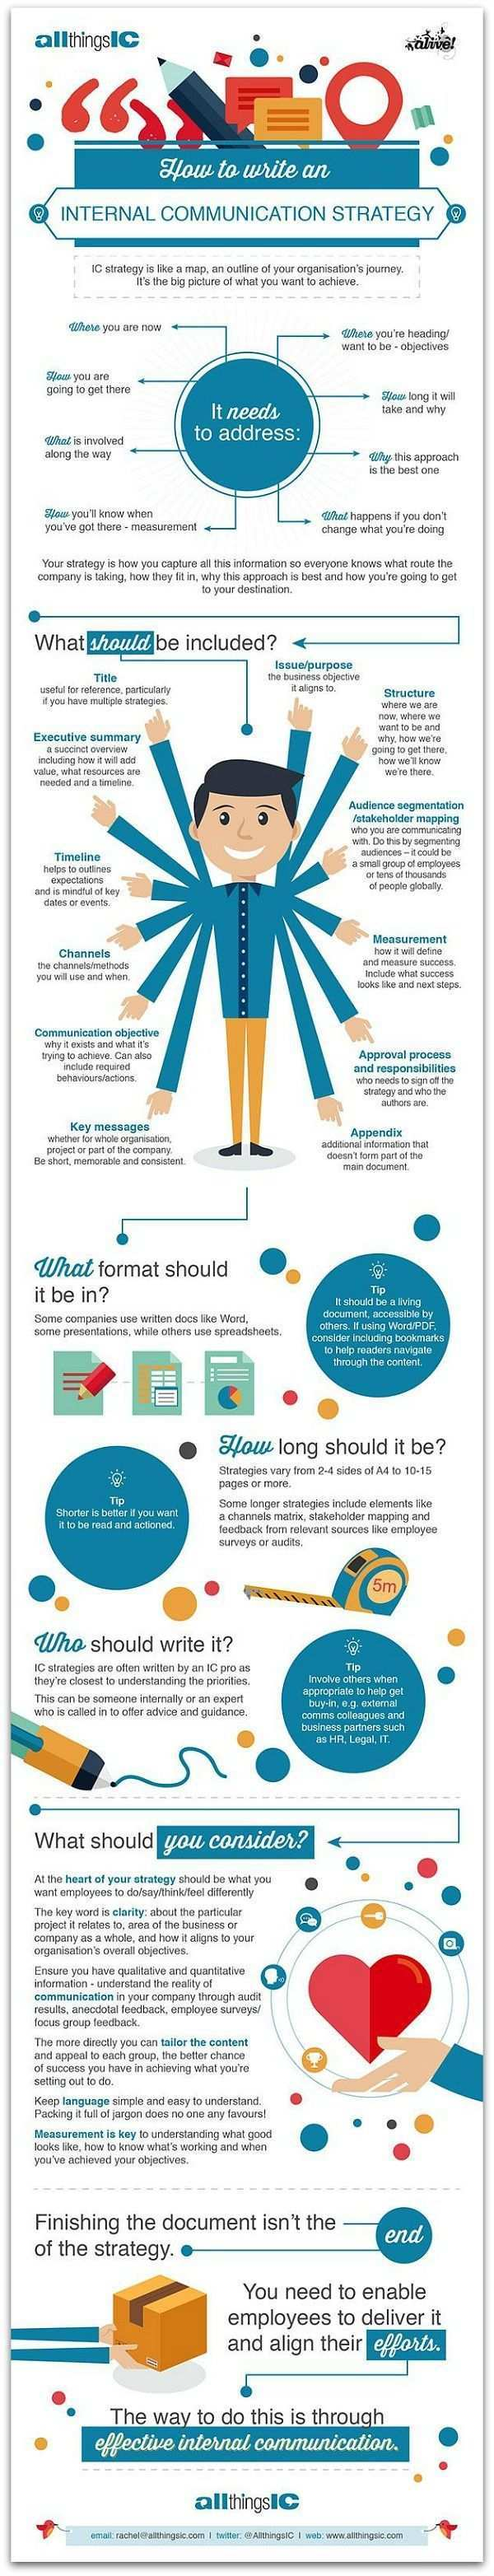 Infographic How To Write An Internal Communication Strategy Business Communication Communications Strategy Corporate Communication